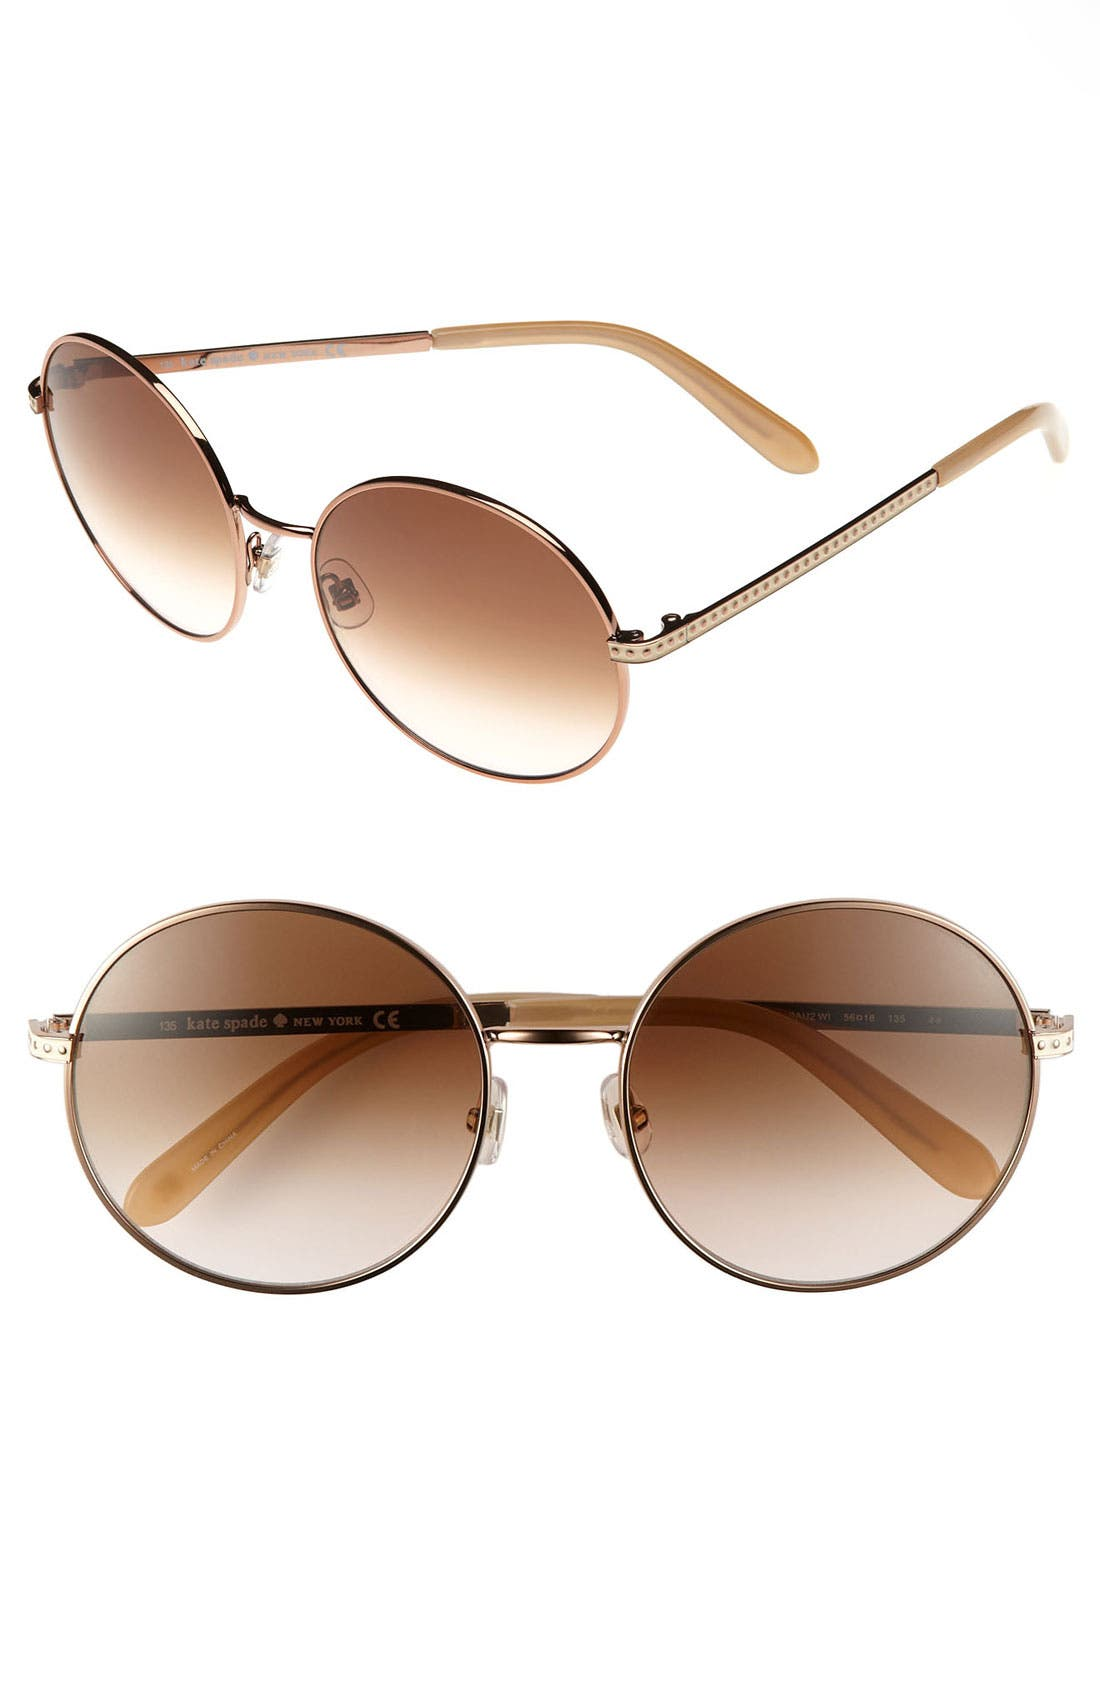 Alternate Image 1 Selected - kate spade new york 'avice' 56mm sunglasses